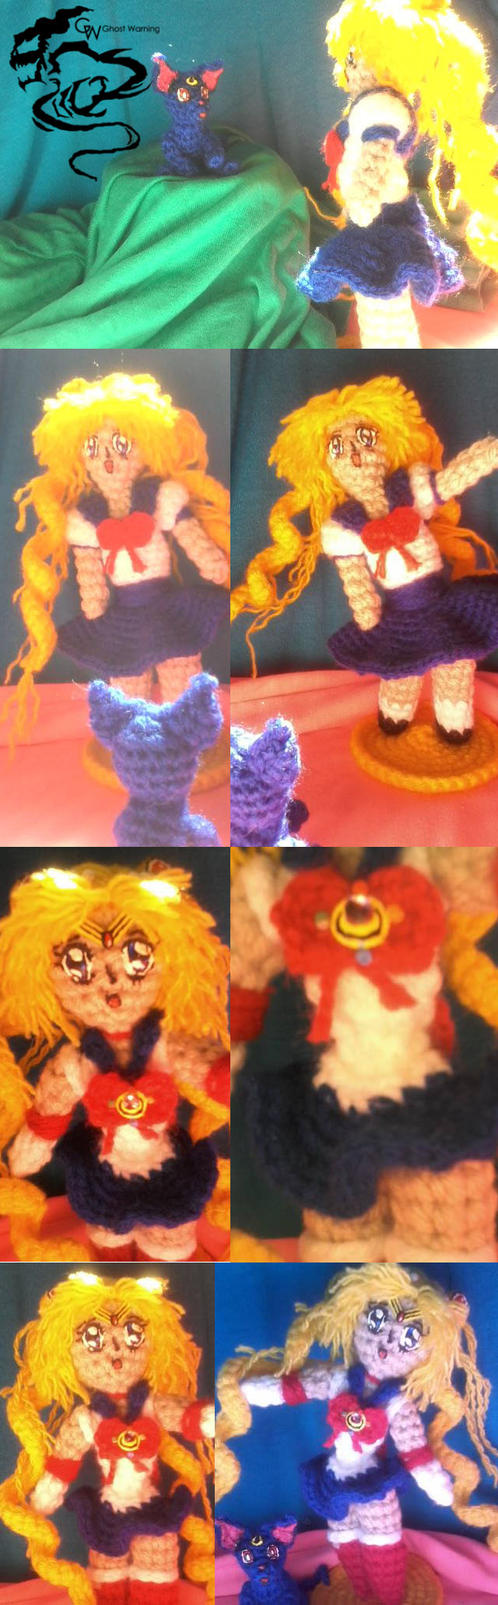 Usagi meet Luna (Amigurumi). by LGhost